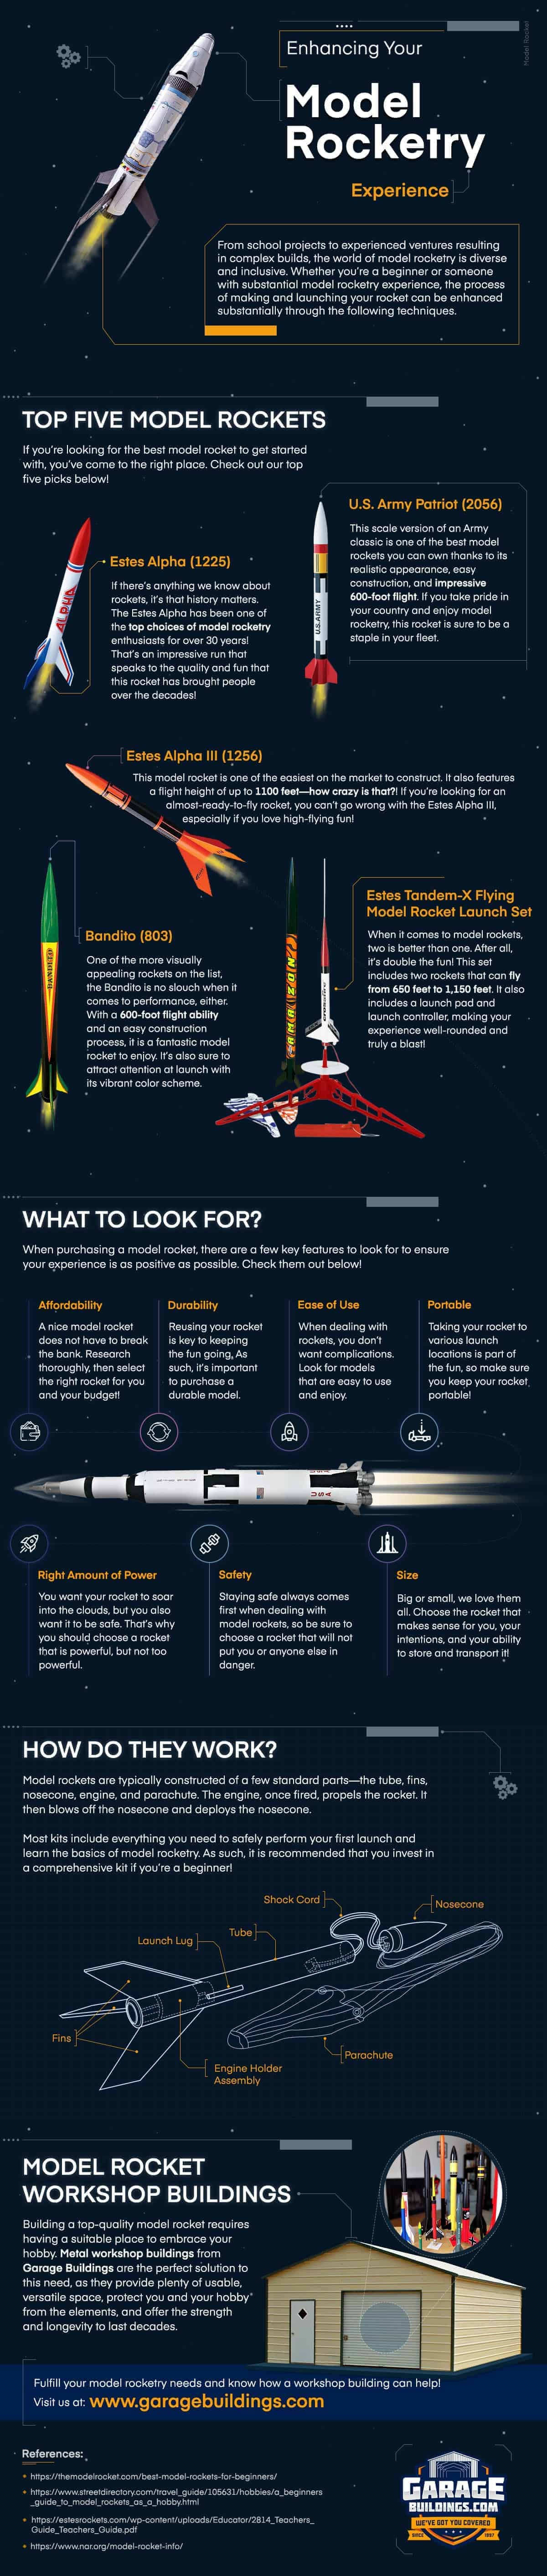 enhancing-your-model-rocketry-experience-infographic